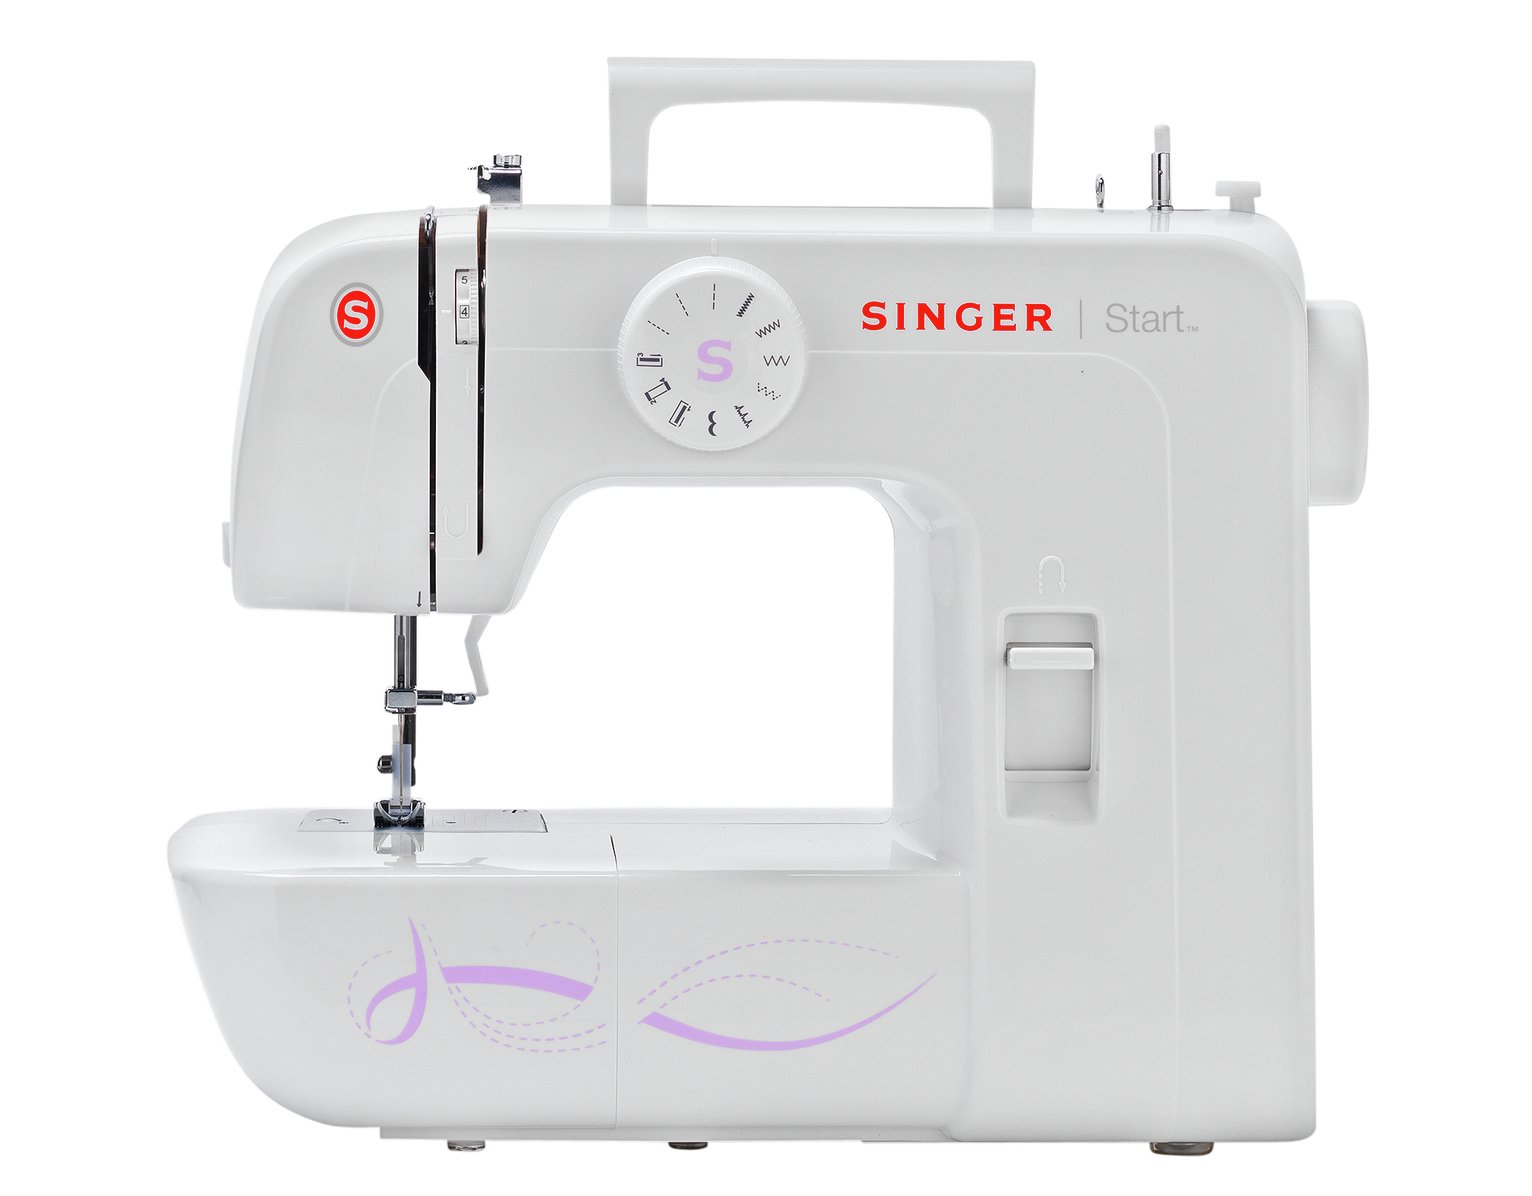 Singer - 1306 Sewing Machine